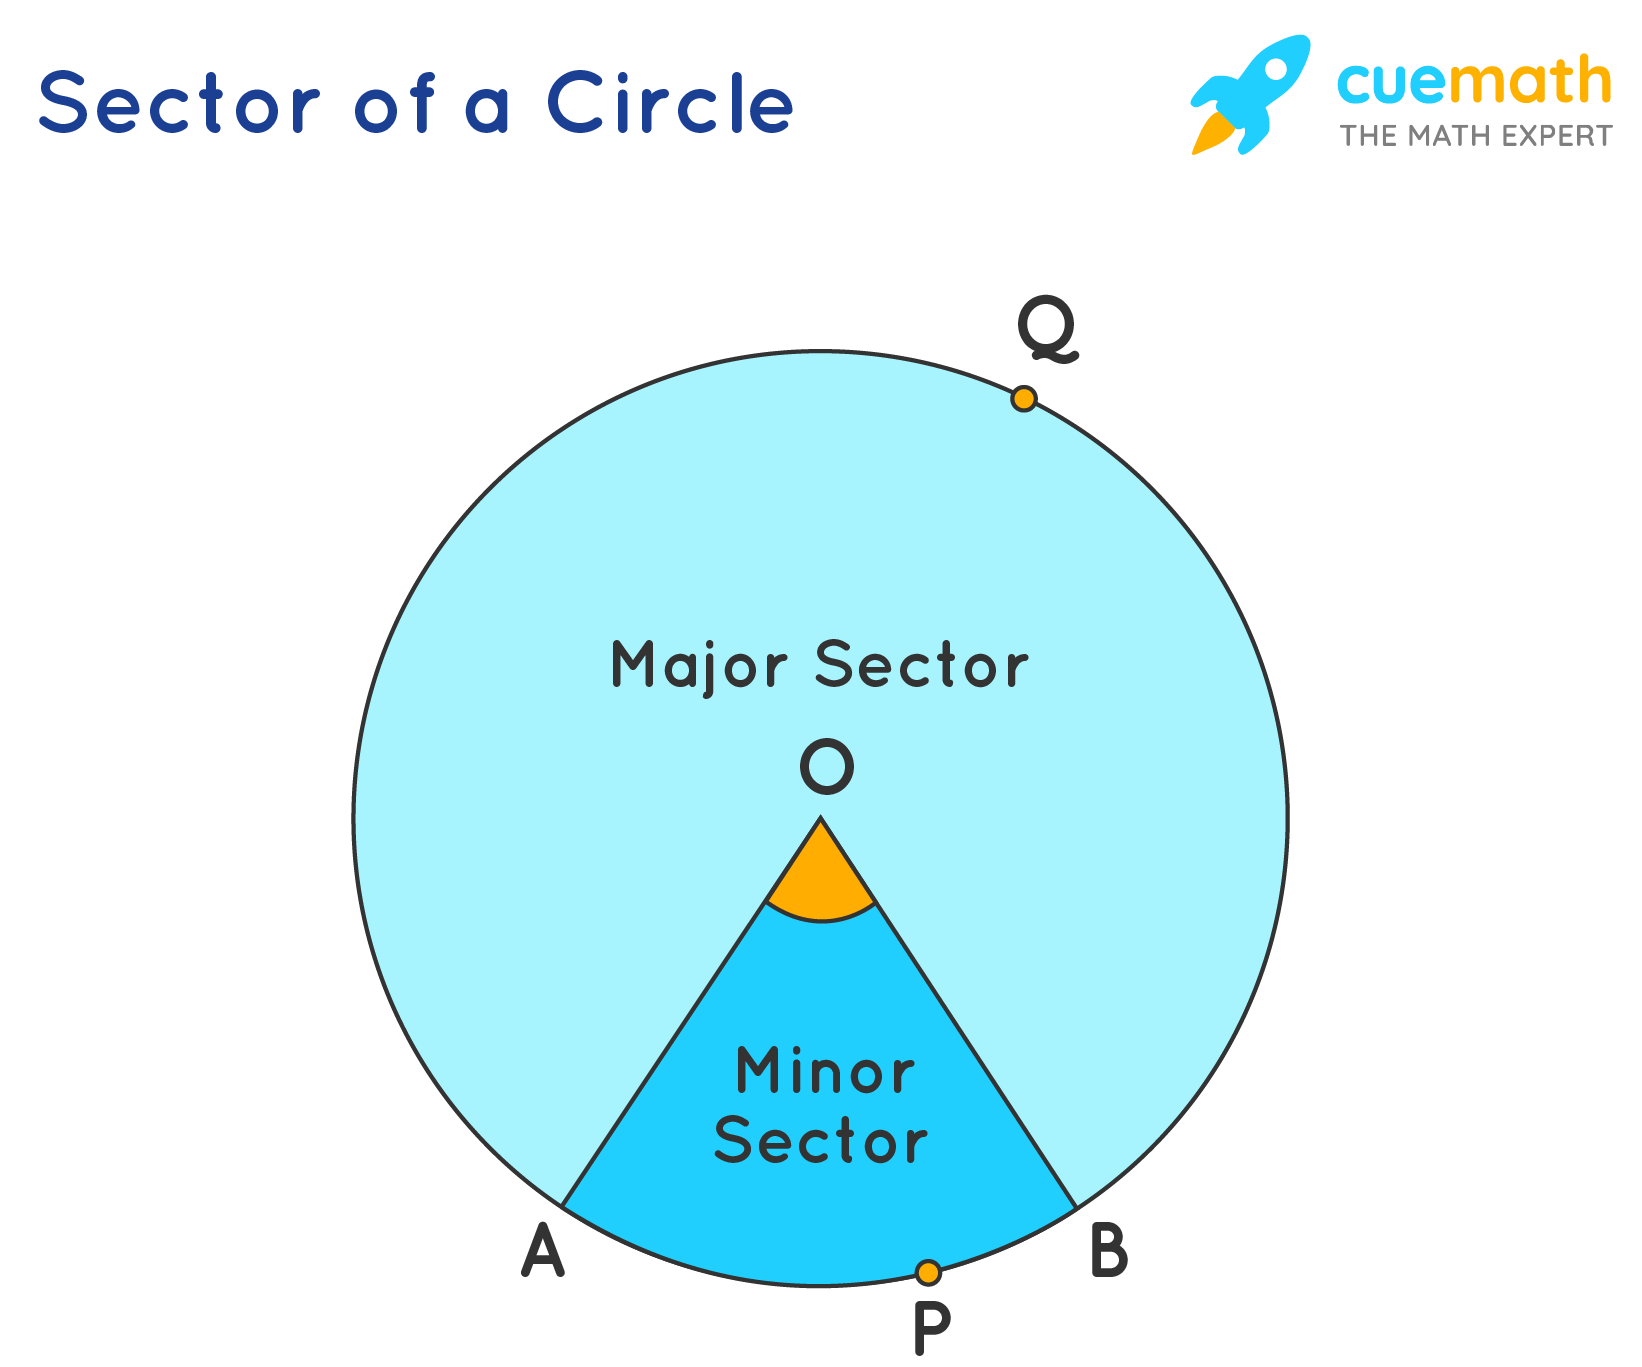 Sector of a circle image showing major sector and minor sector.